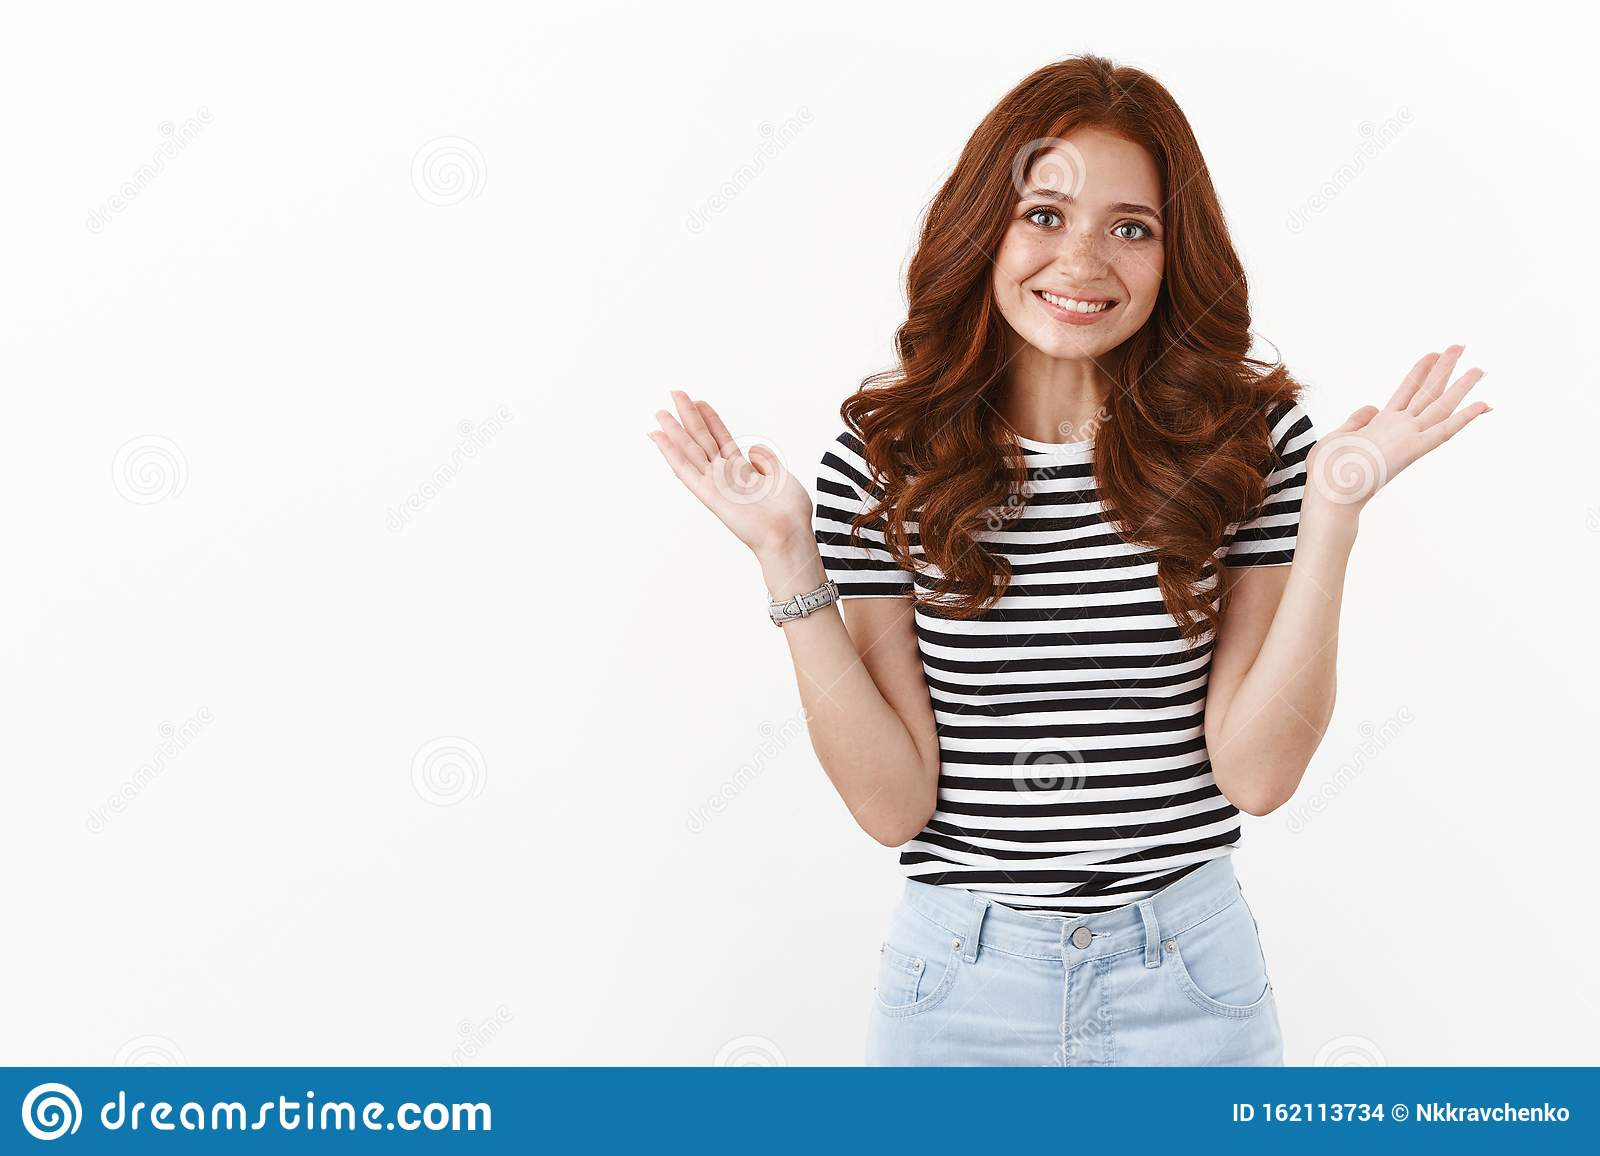 Hands Up Woman Surrender Photos Free Royalty Free Stock Photos From Dreamstime